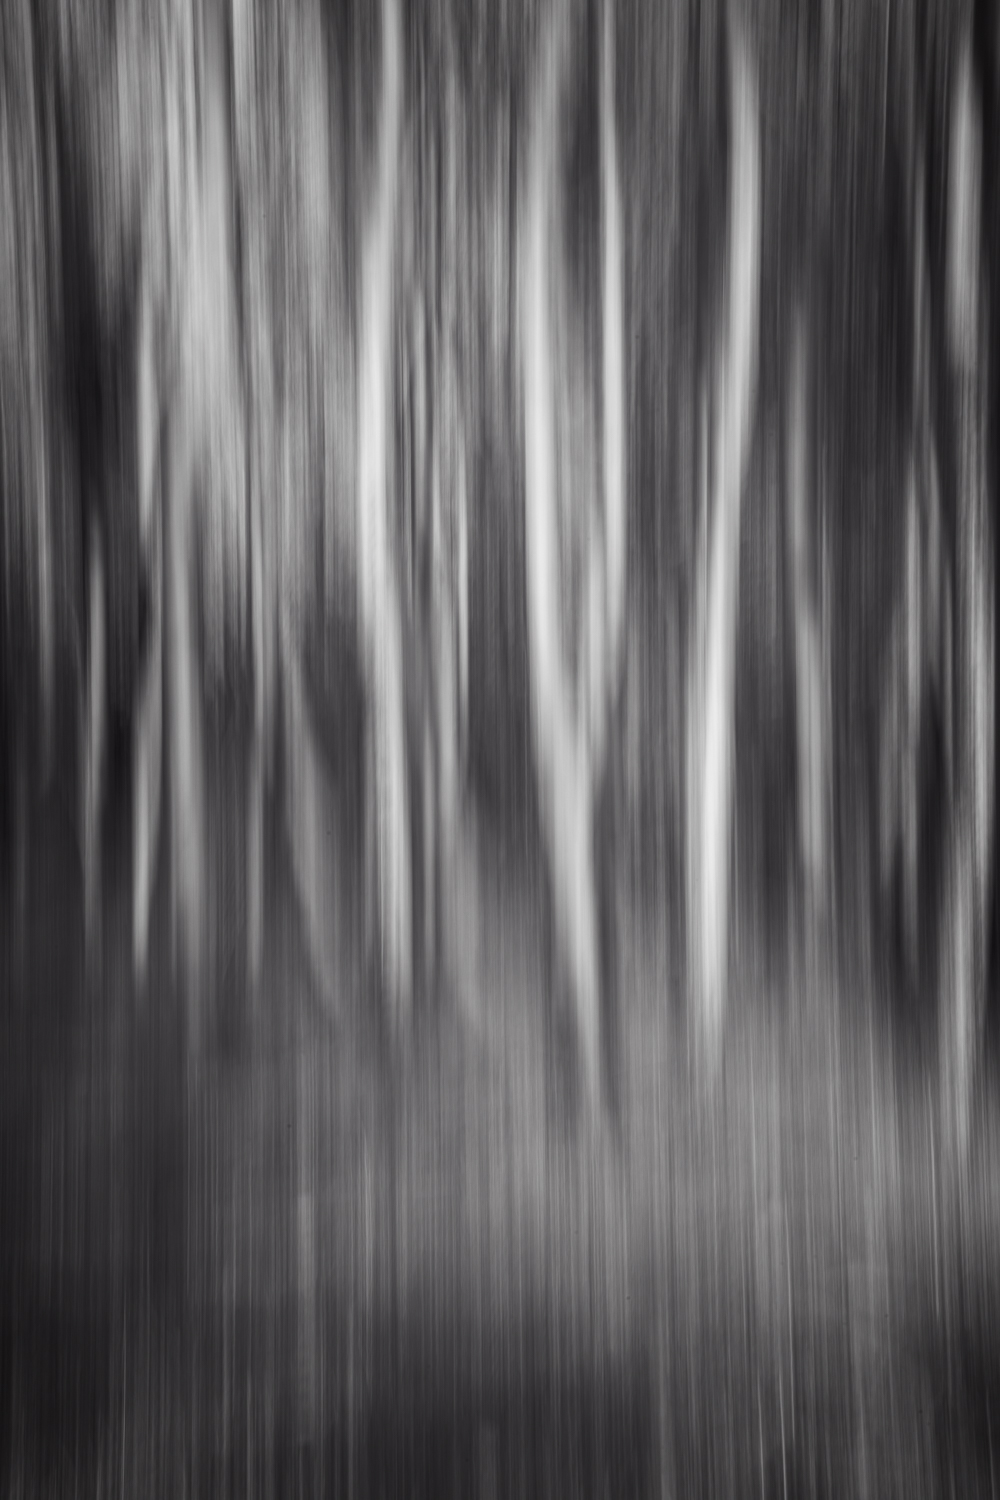 Mono tree dreams 1